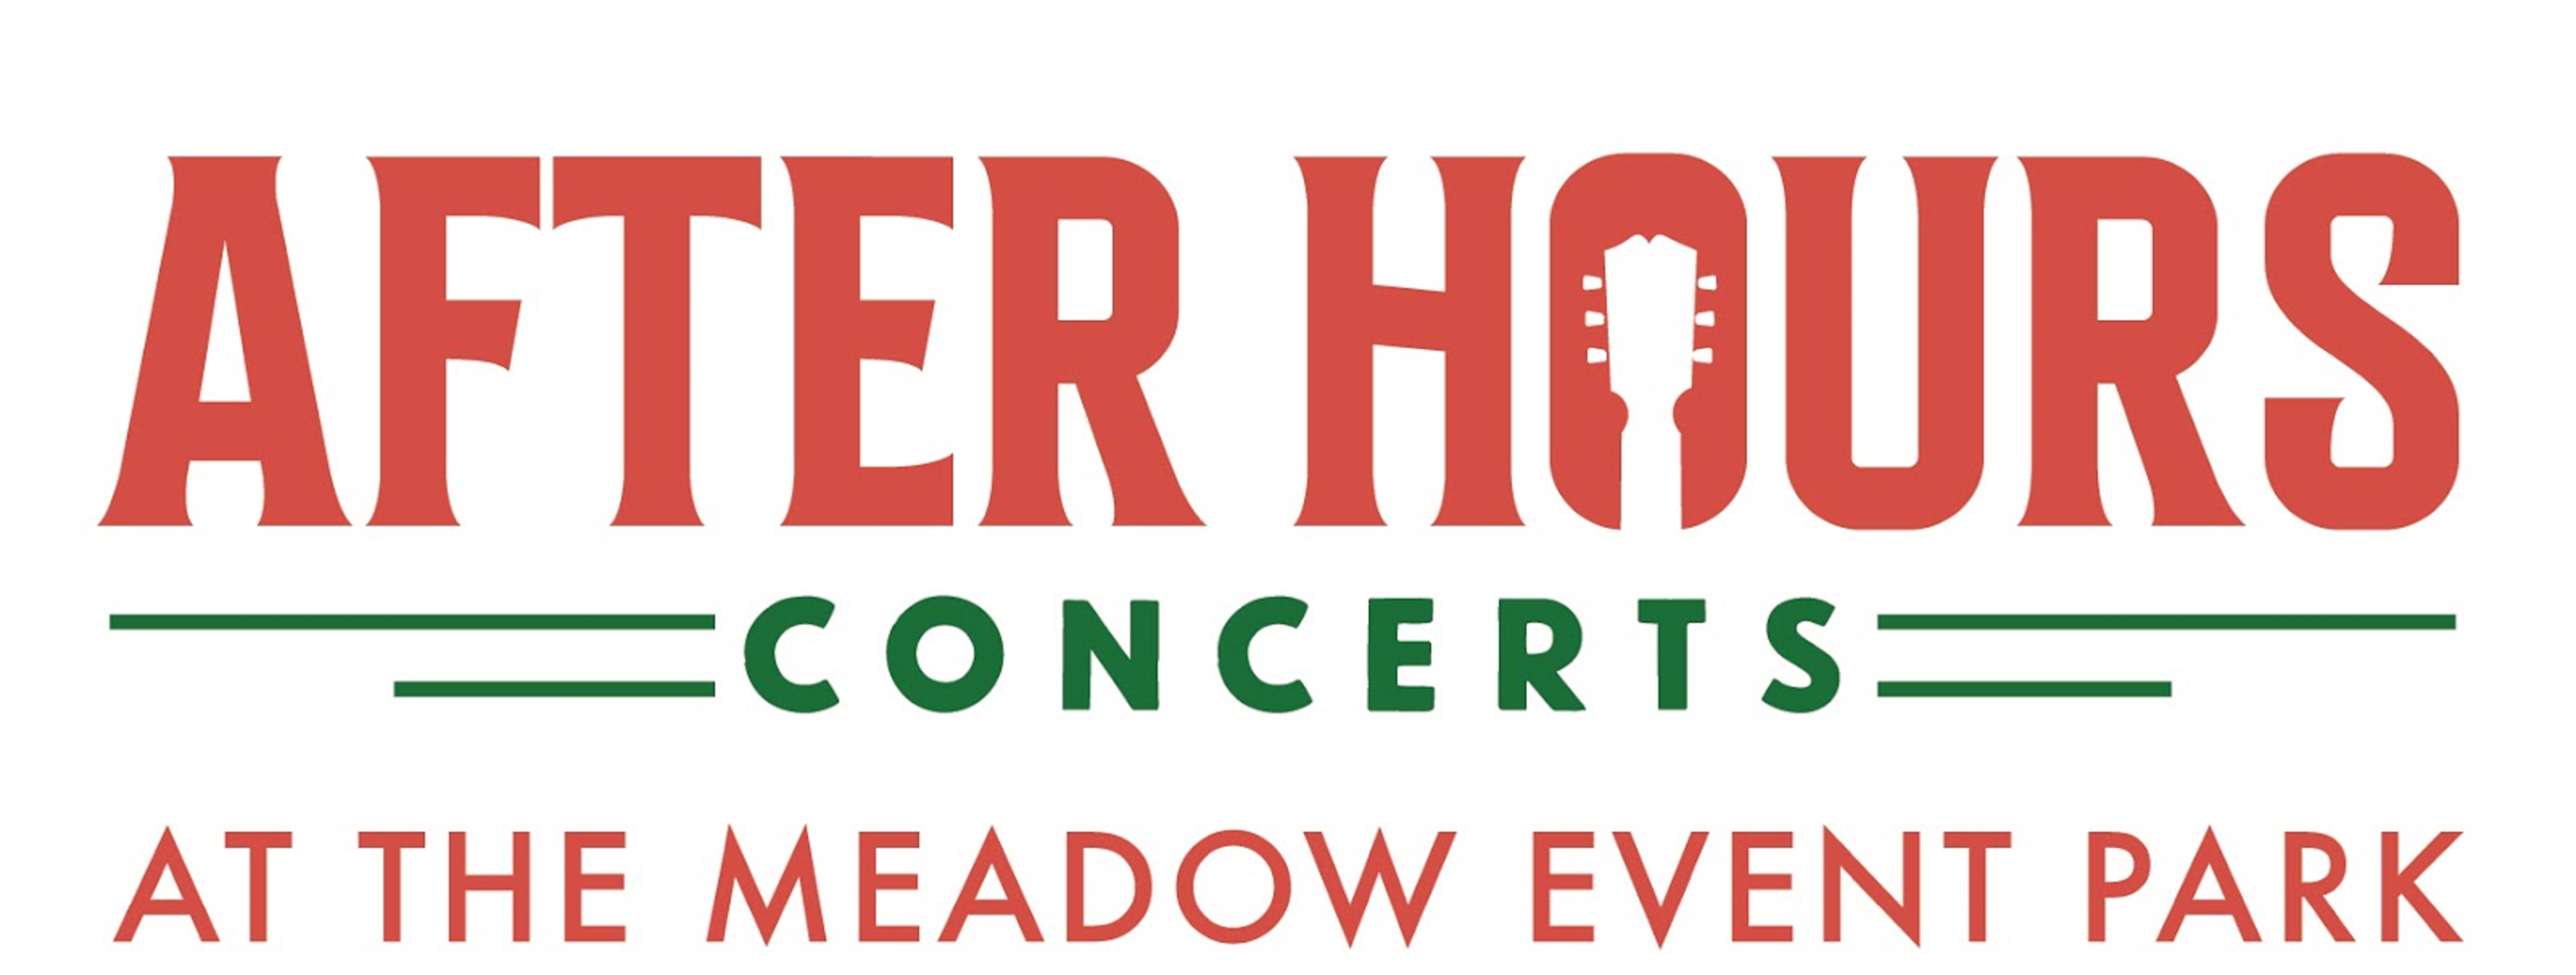 After Hours Concert Series will  move to The Meadow Event Park in Caroline County, Virginia